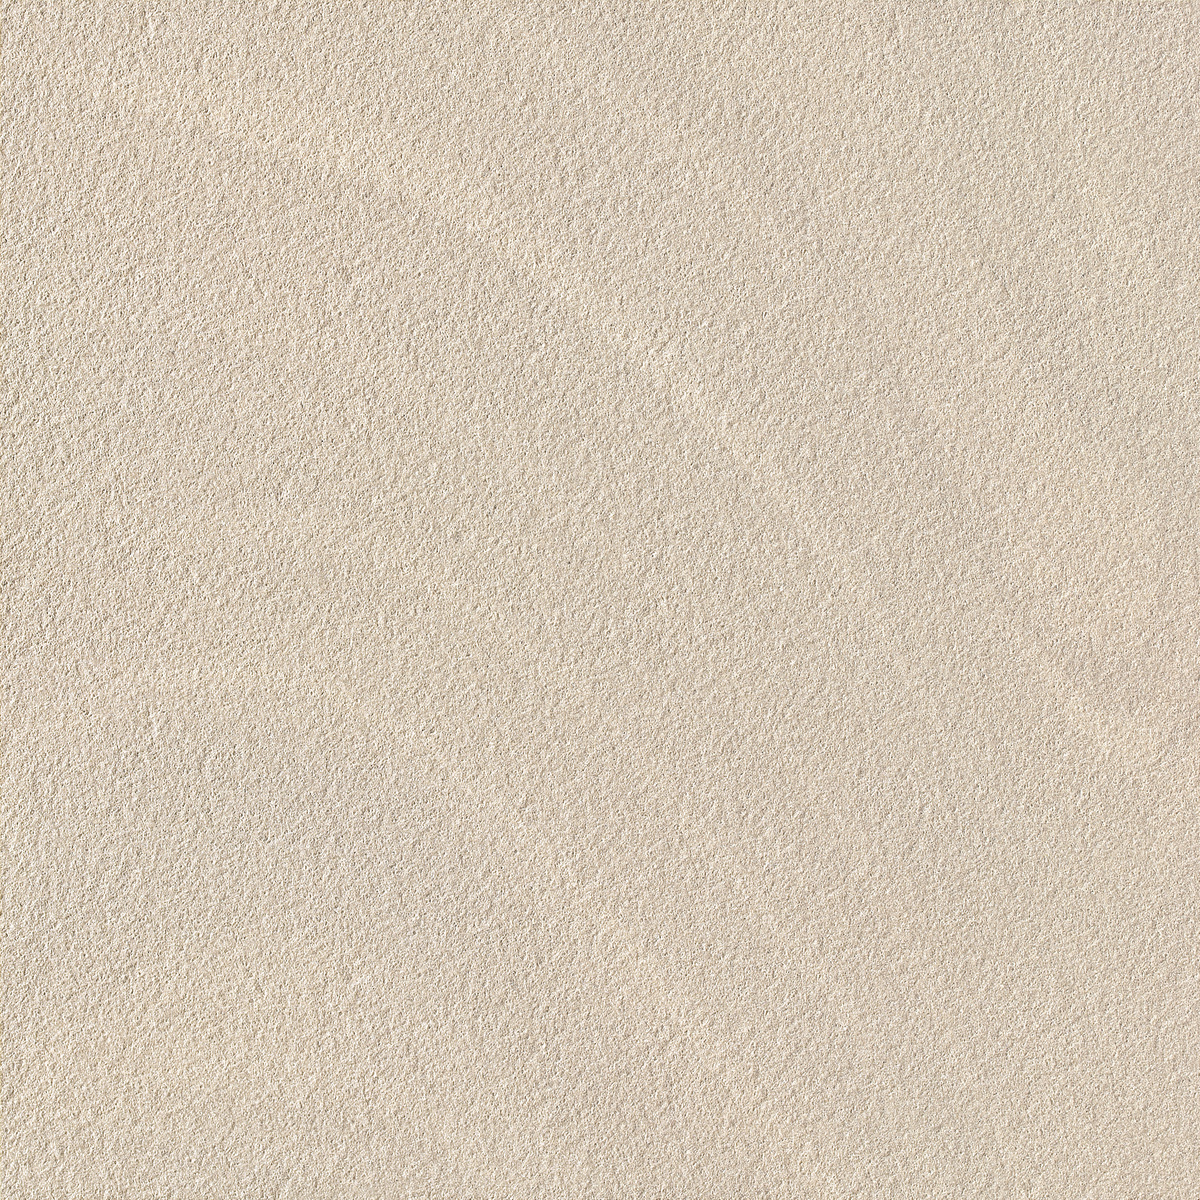 Tiles - PERTH - Textured Ivory 300x600mm (8 pieces)